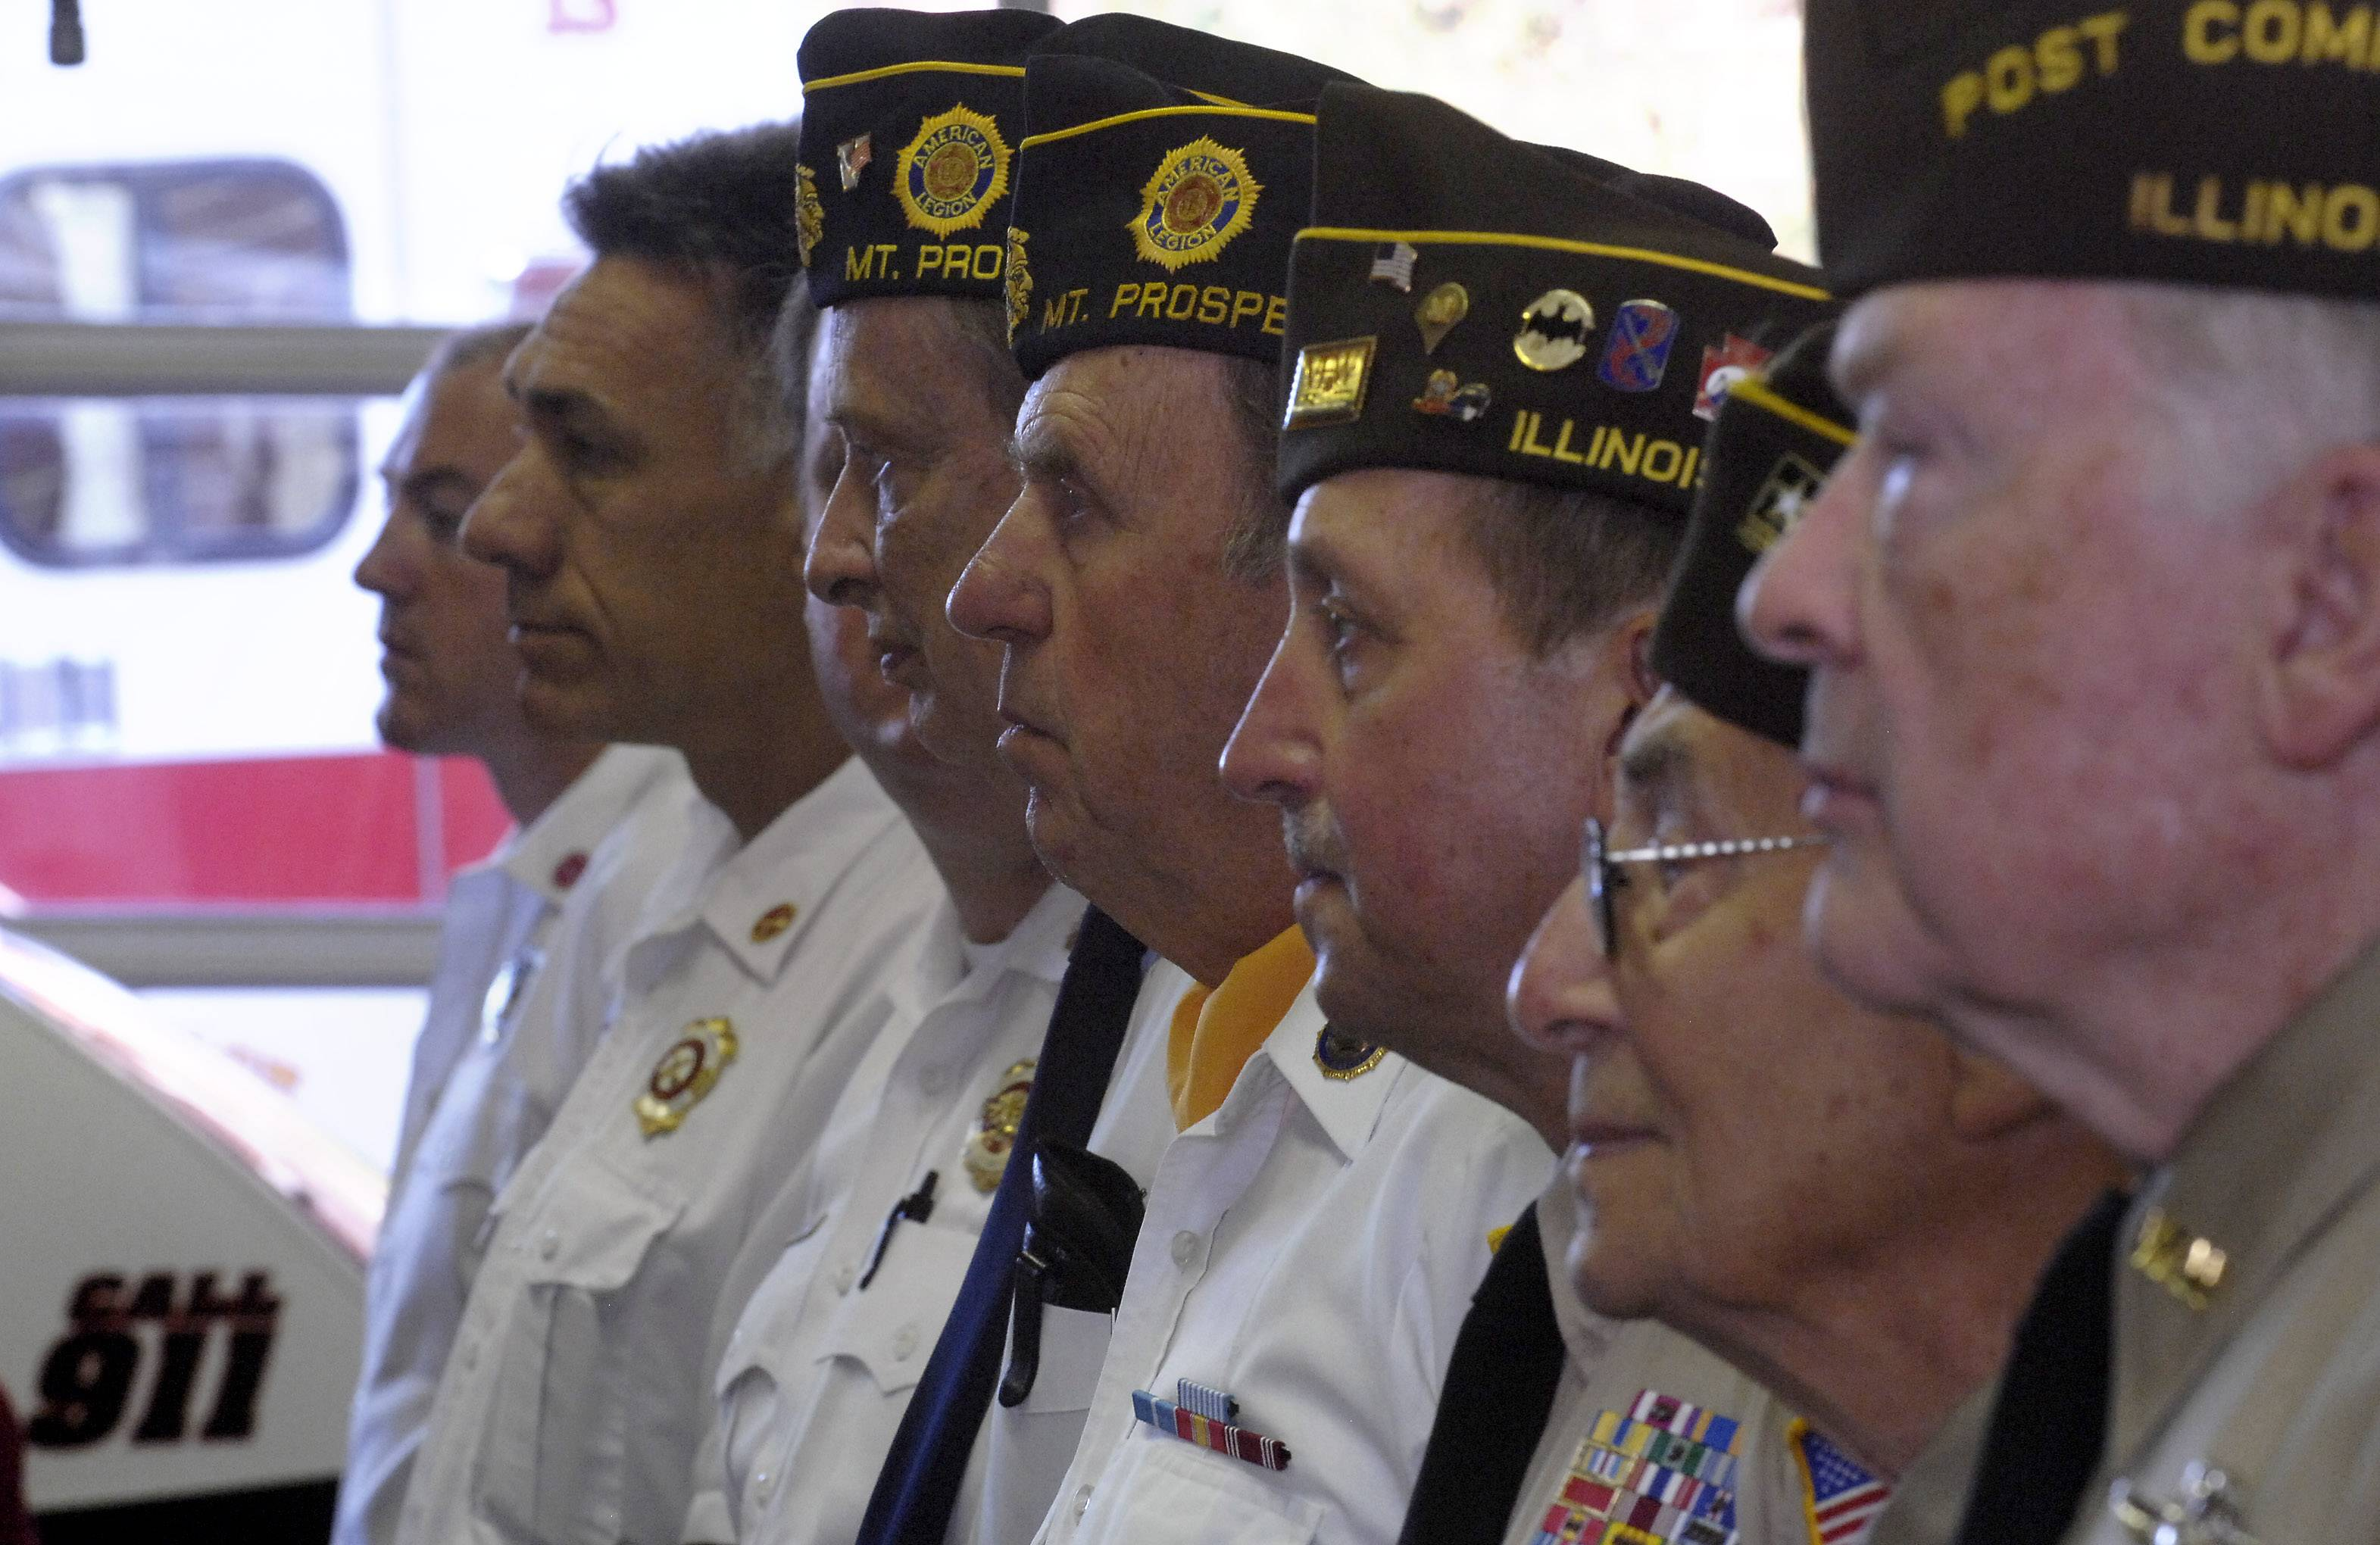 Veterans join a Sept. 11 commemoration in Mount Prospect.